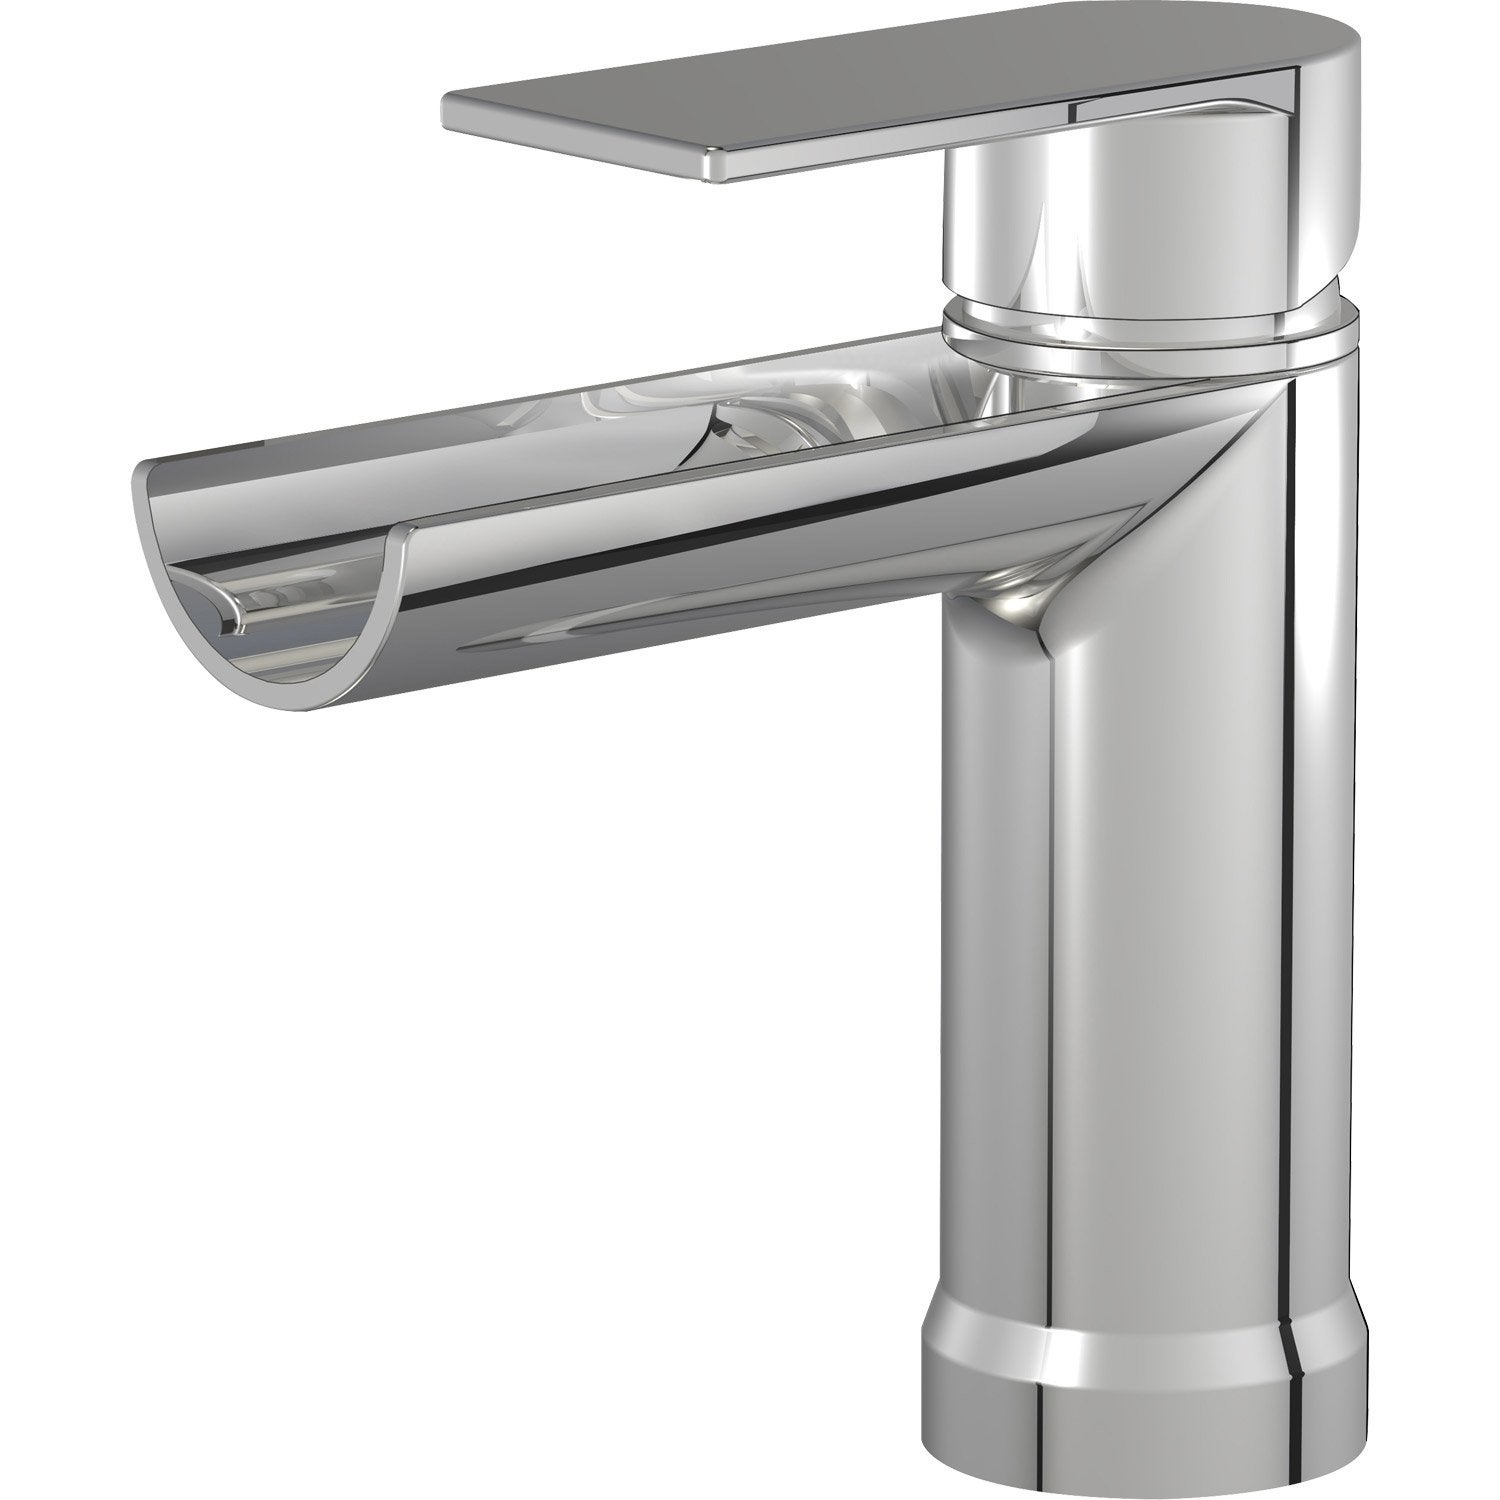 Lavabo top home design for Robinet lavabo salle de bain leroy merlin